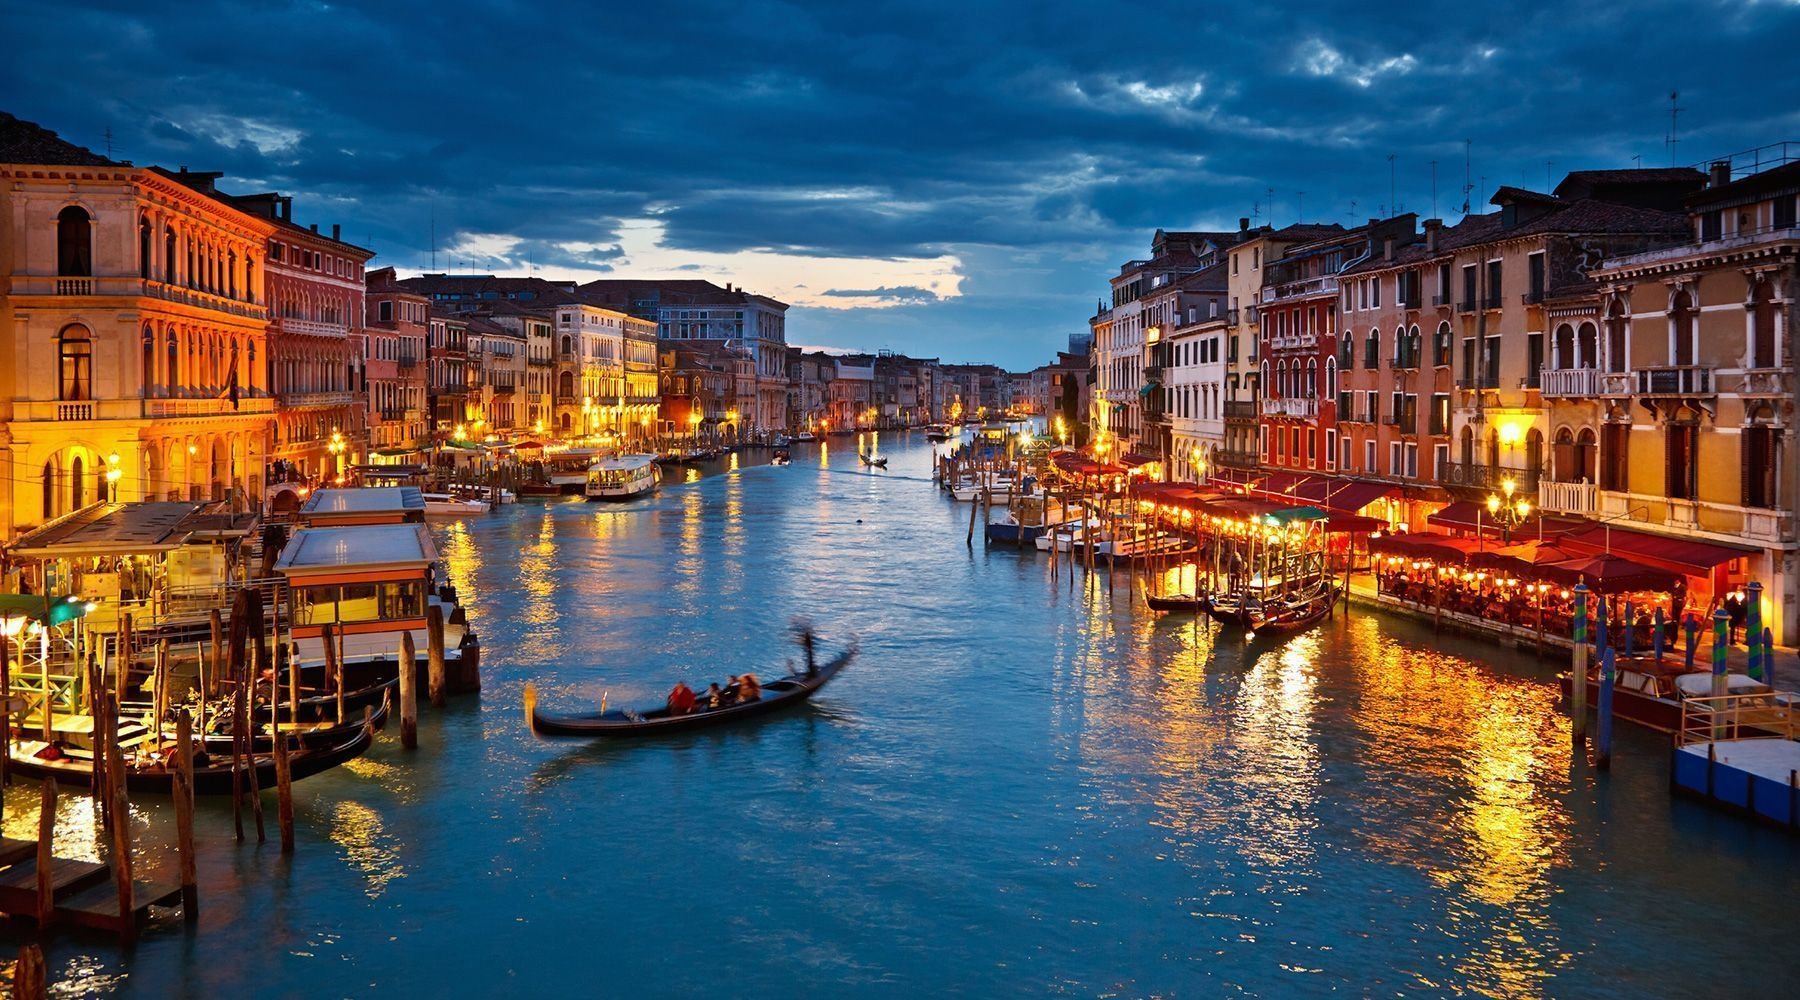 Venice Backgrounds on Wallpapers Vista